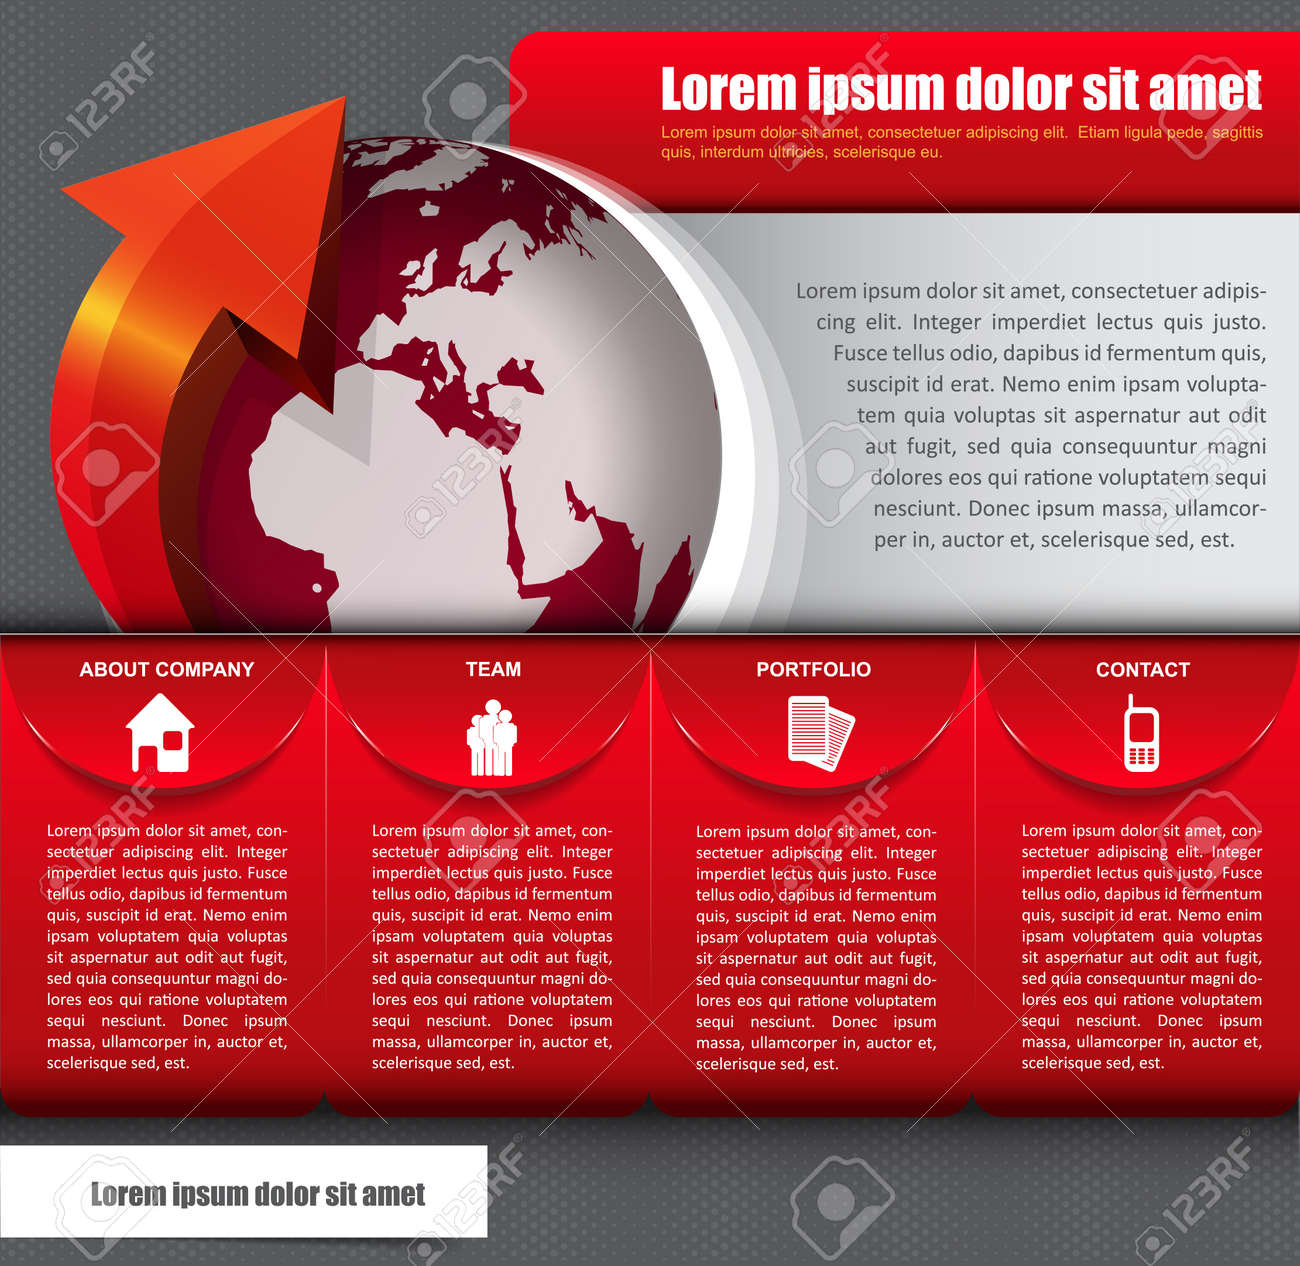 Vector abstract background with icons, globe and a description for company Stock Vector - 21566769